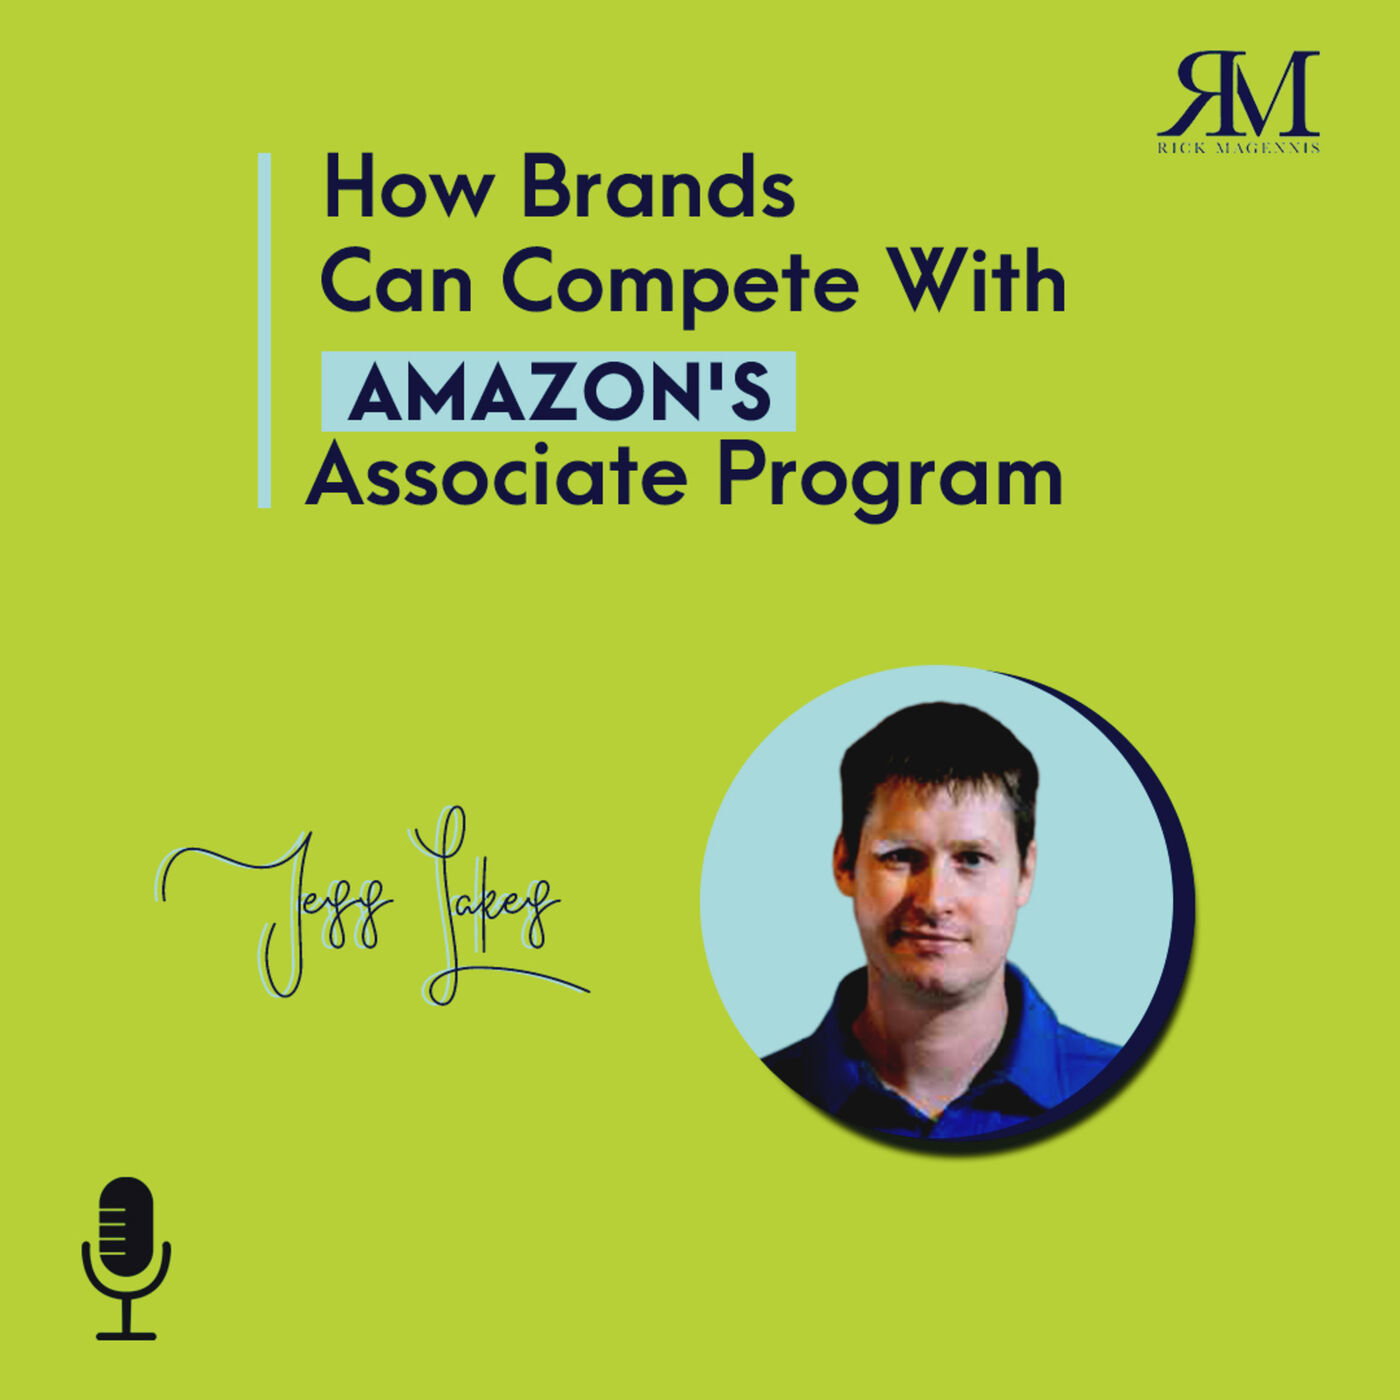 How Brands can Compete with Amazon's Associate Program